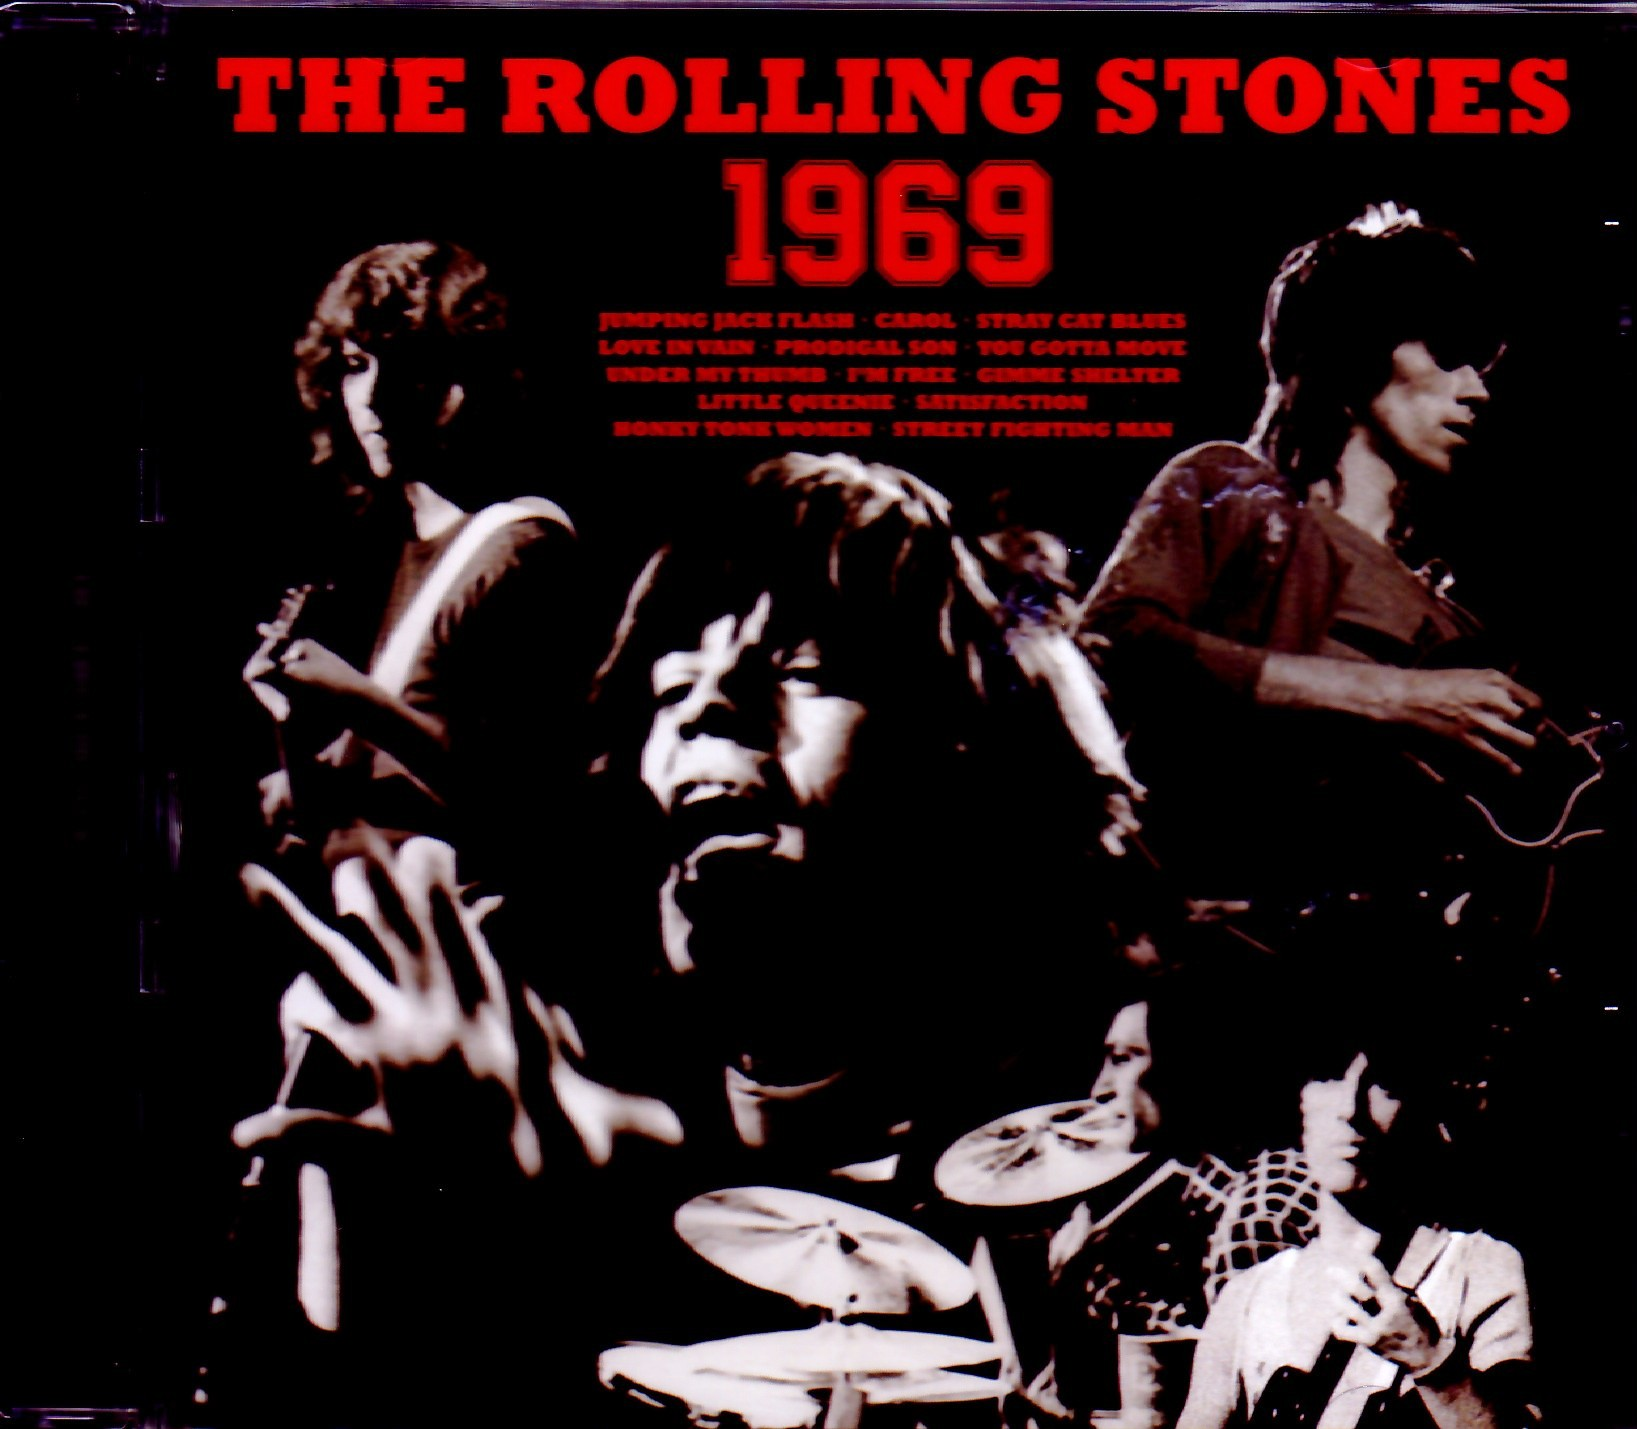 Rolling Stones ローリング・ストーンズ/Tour 1969 SBD Collection